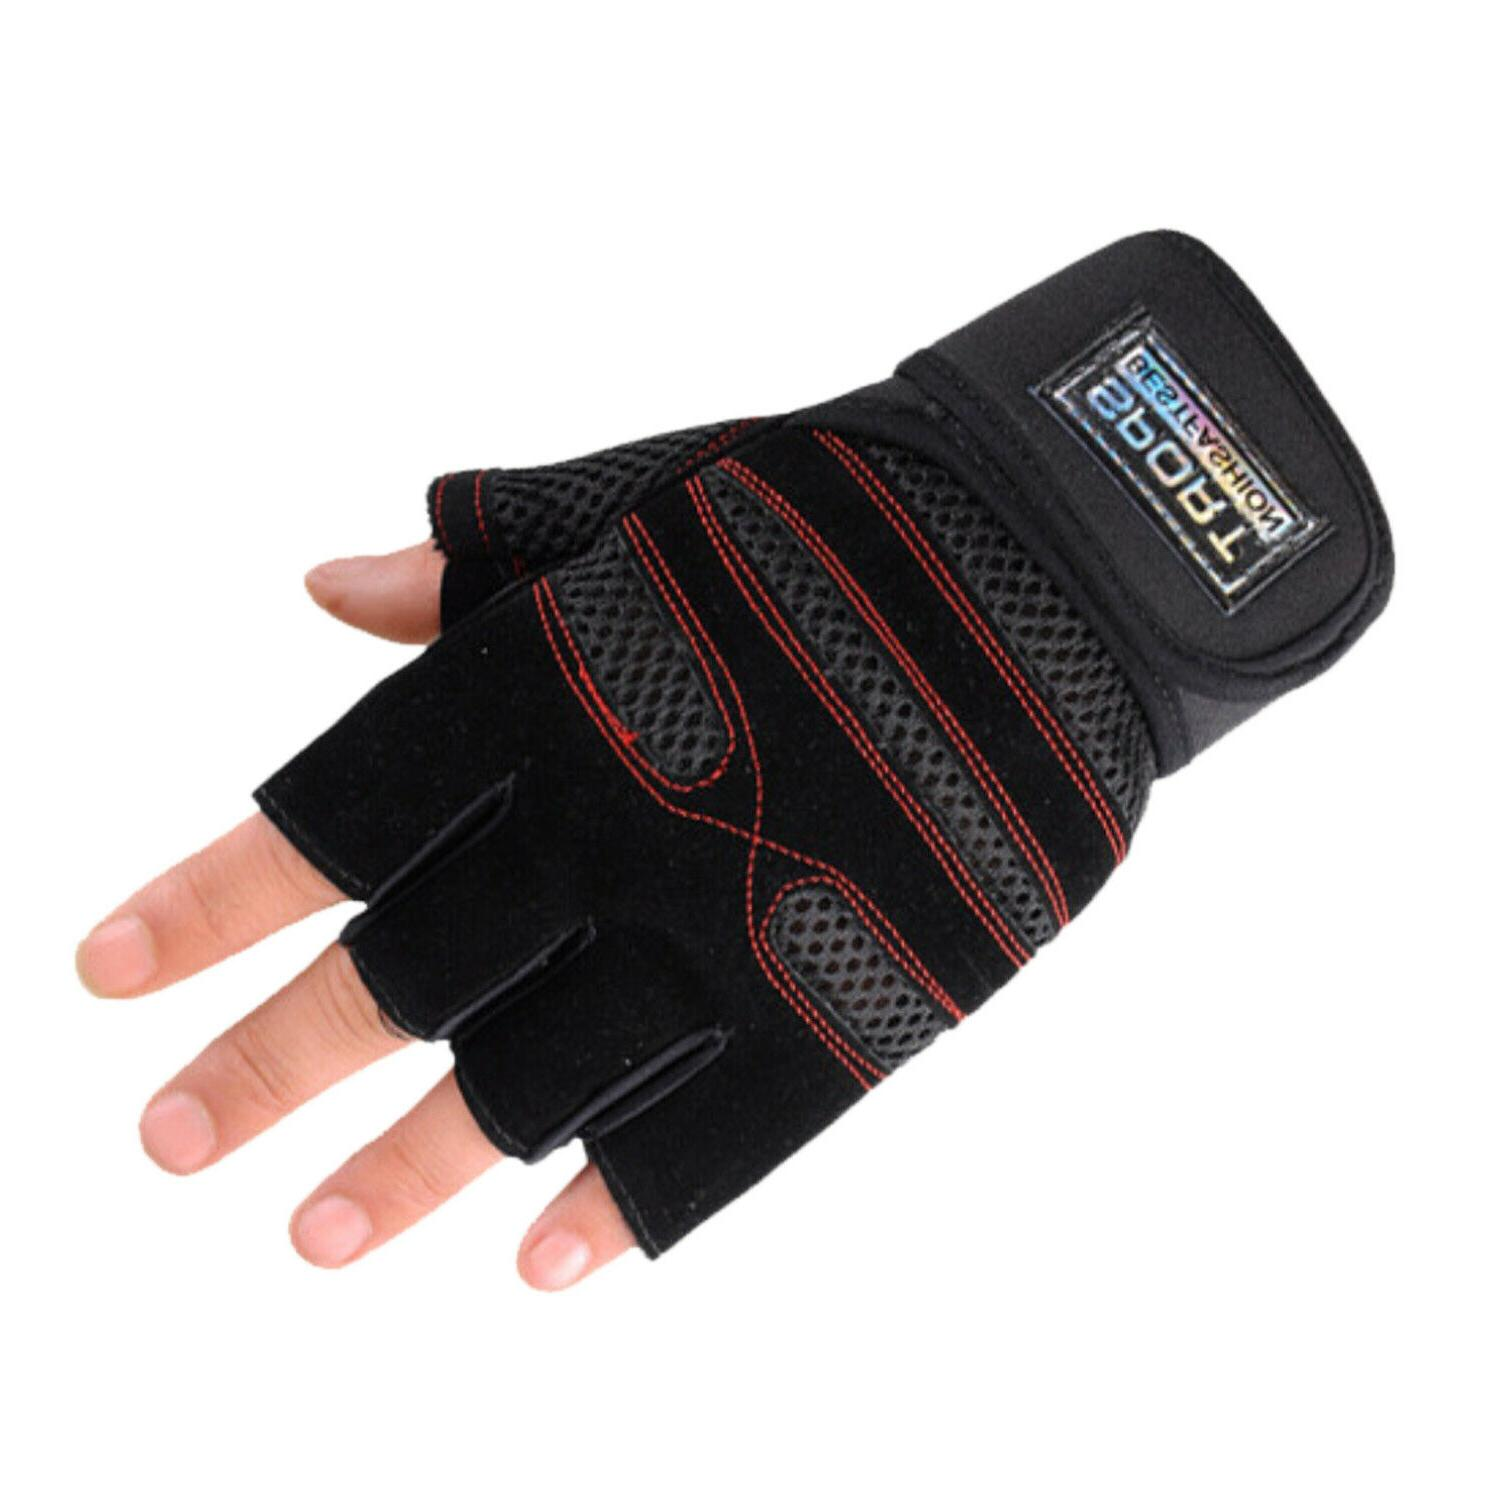 Wrist Wrap Fitness Workout Exercise Weightlifting Gym Gloves